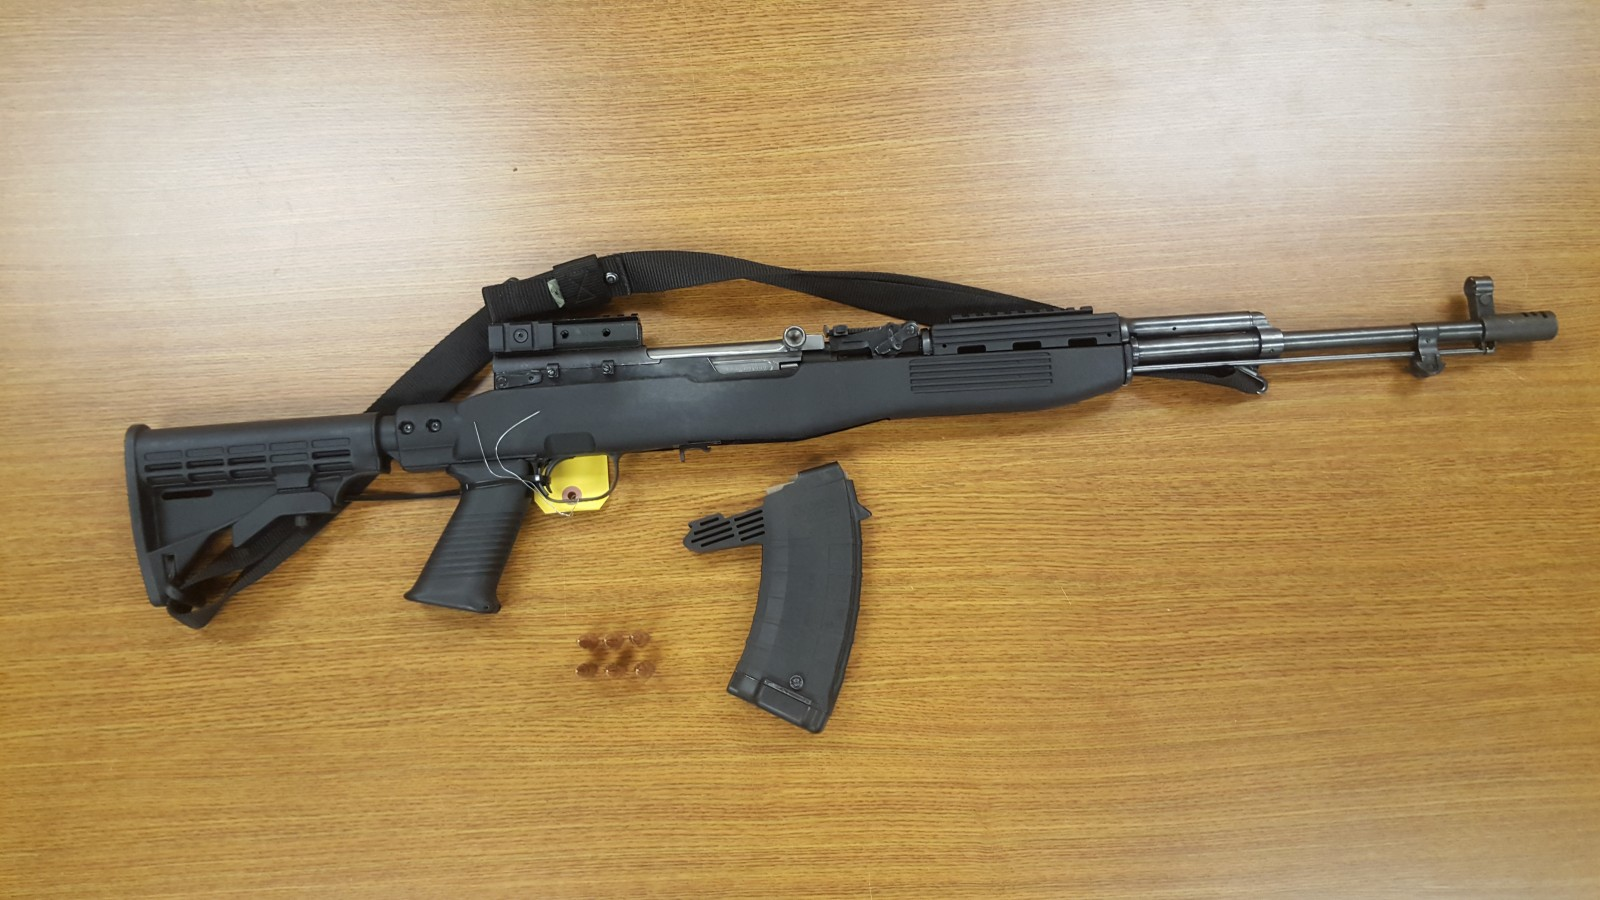 London man faces charges for having a semi-automatic rifle at his house